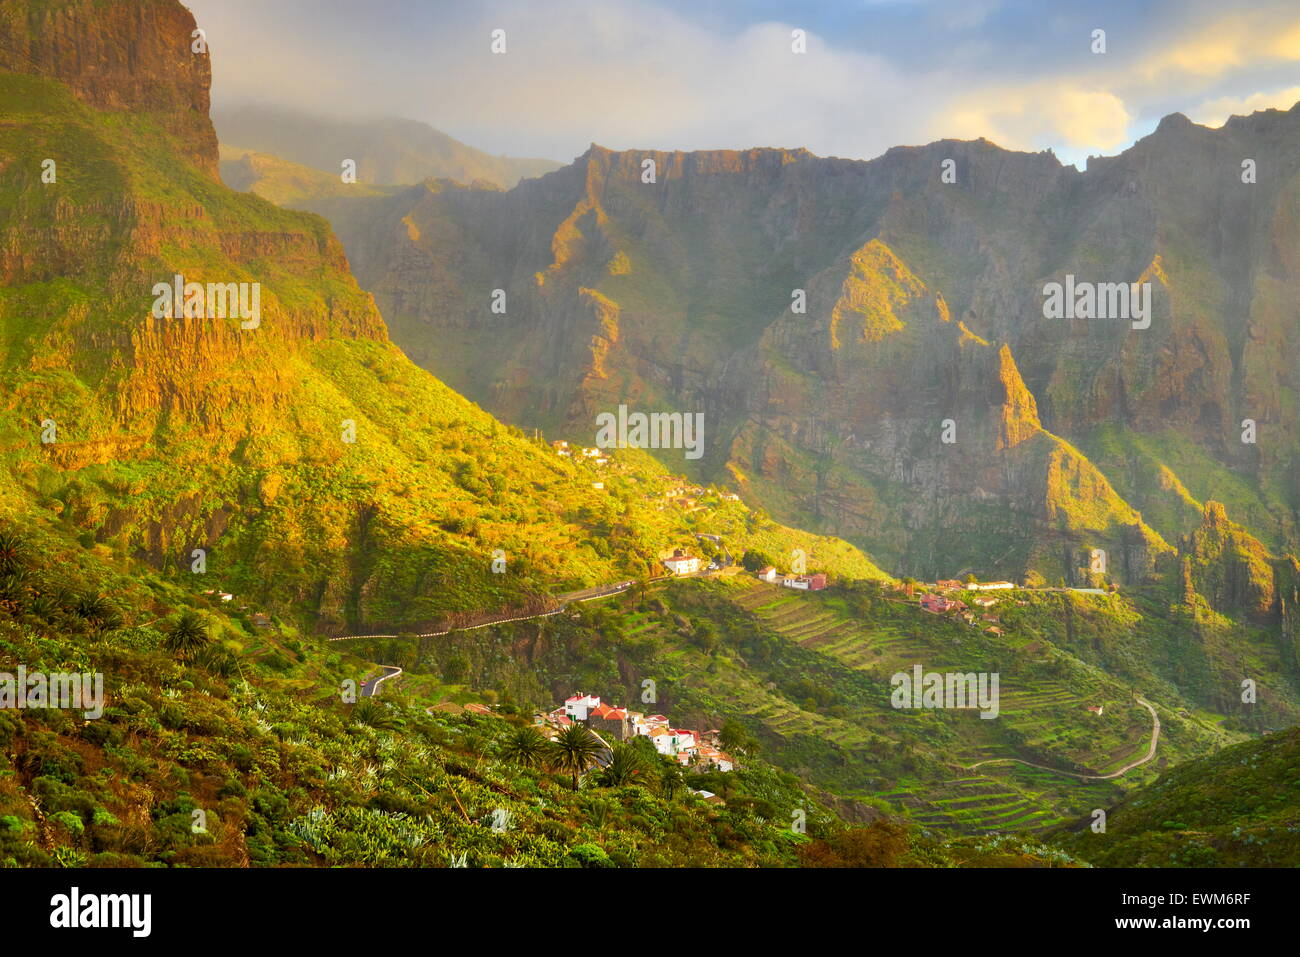 Masca village, Tenerife, Canary Islands, Spain - Stock Image